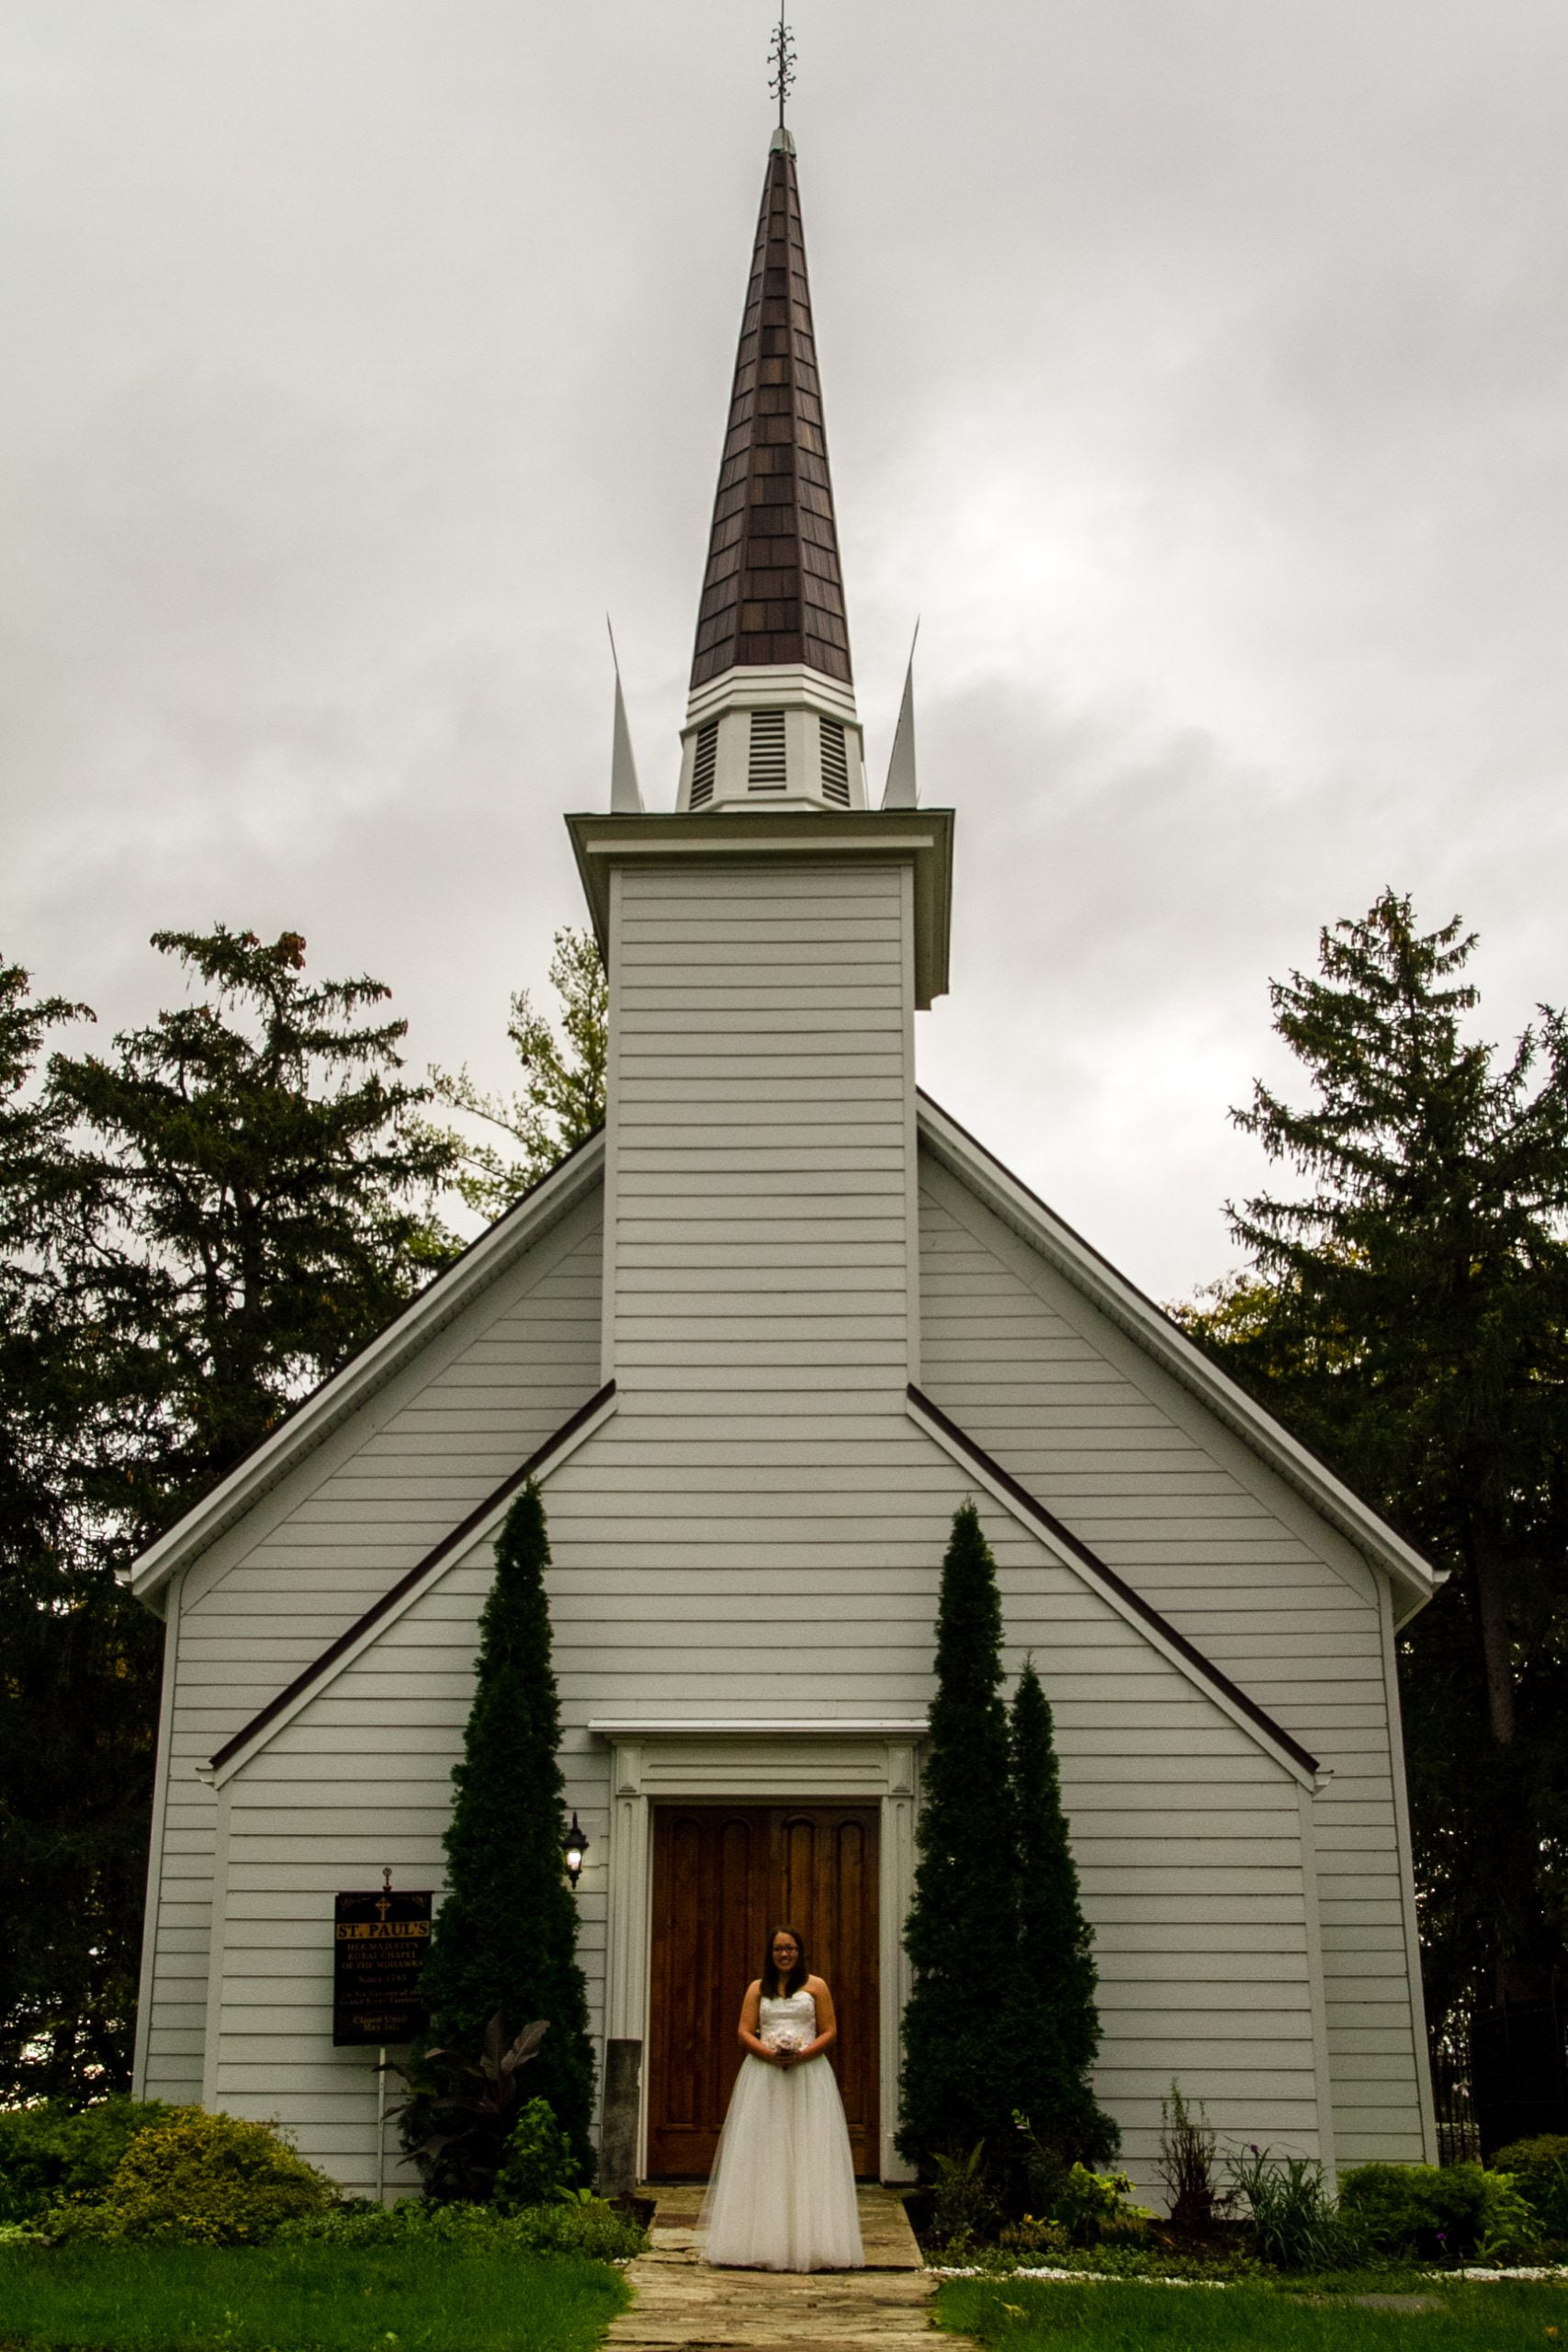 Wedding Chapel - Her Majesty's Royal Chapel of The Mohawks